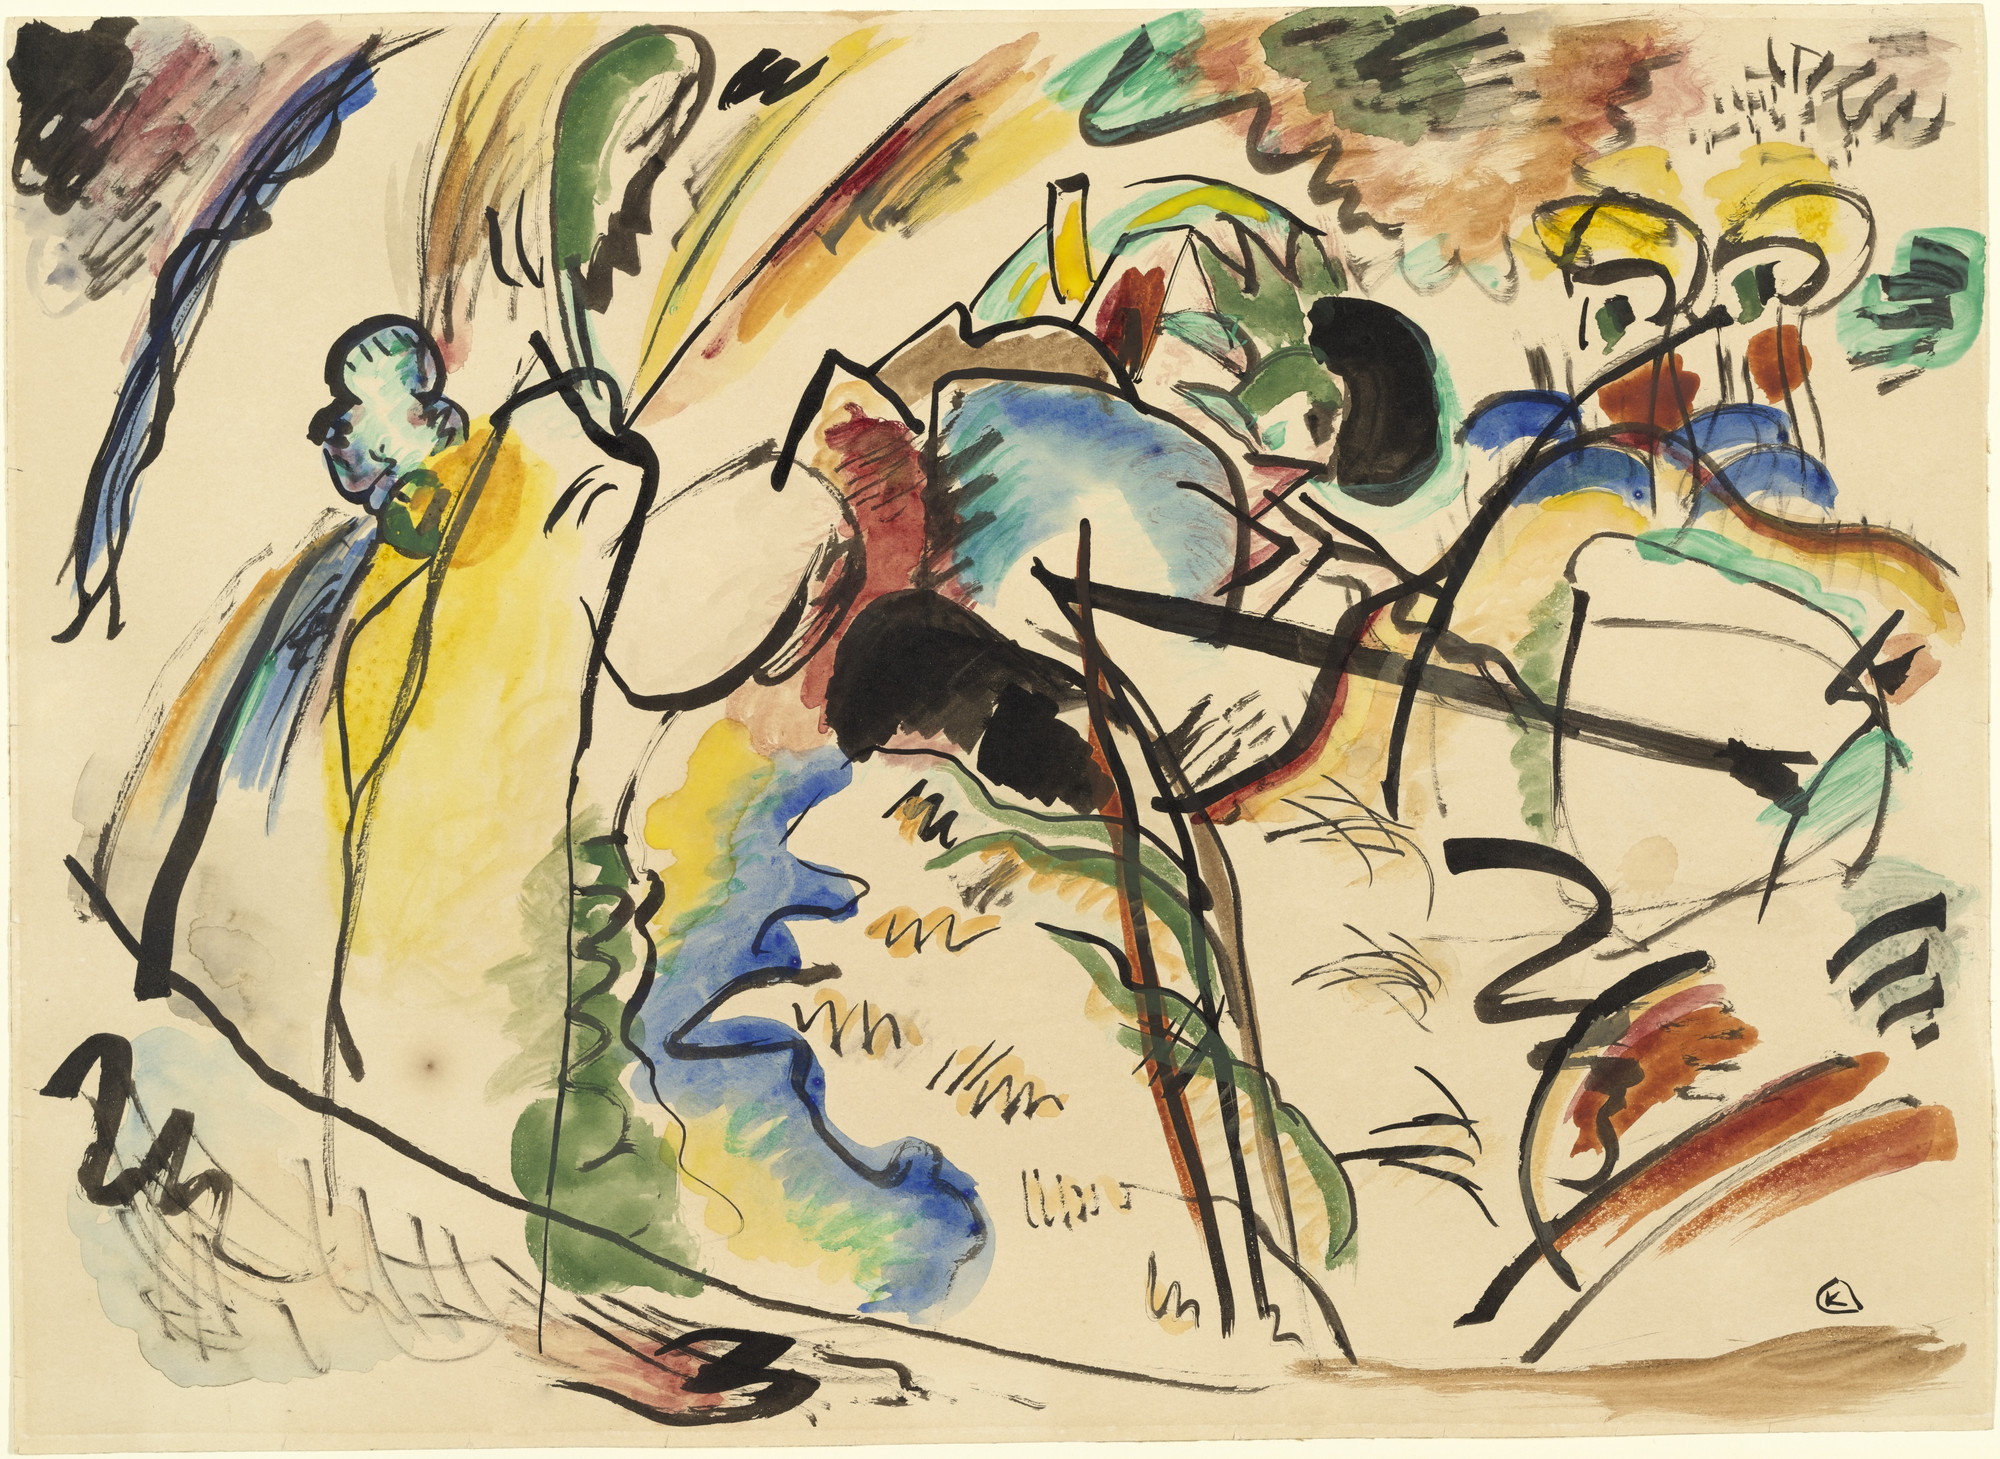 Vasily Kandinsky. Study for Painting with White Form (Entwurf zu Bild mit weisser Form). 1913